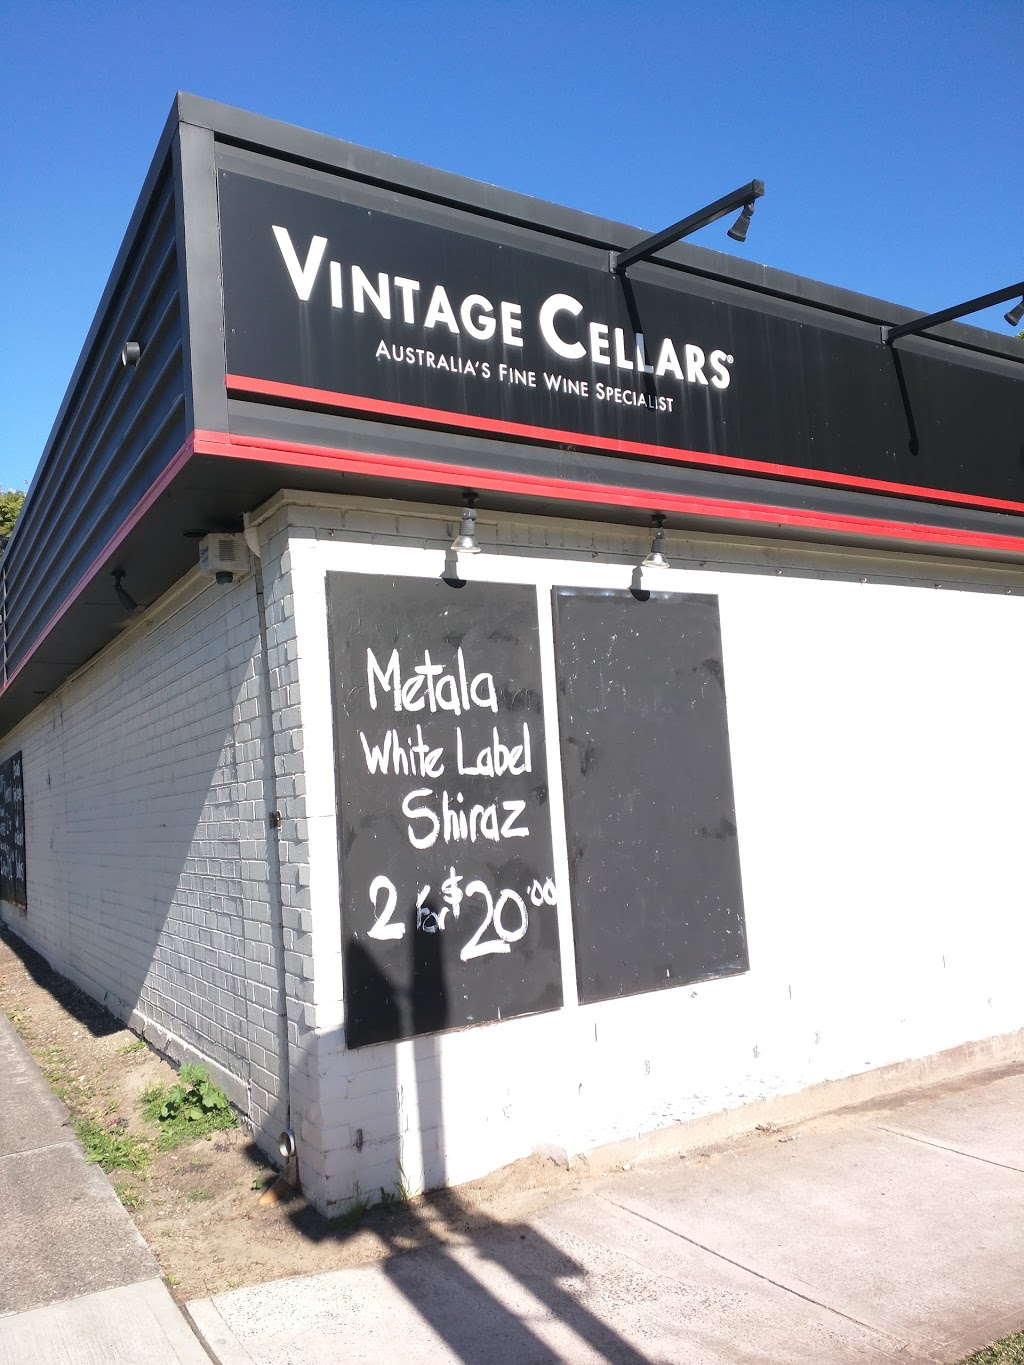 Vintage Cellars Chatswood North | store | 914/918 Pacific Hwy, Chatswood NSW 2067, Australia | 0294192790 OR +61 2 9419 2790